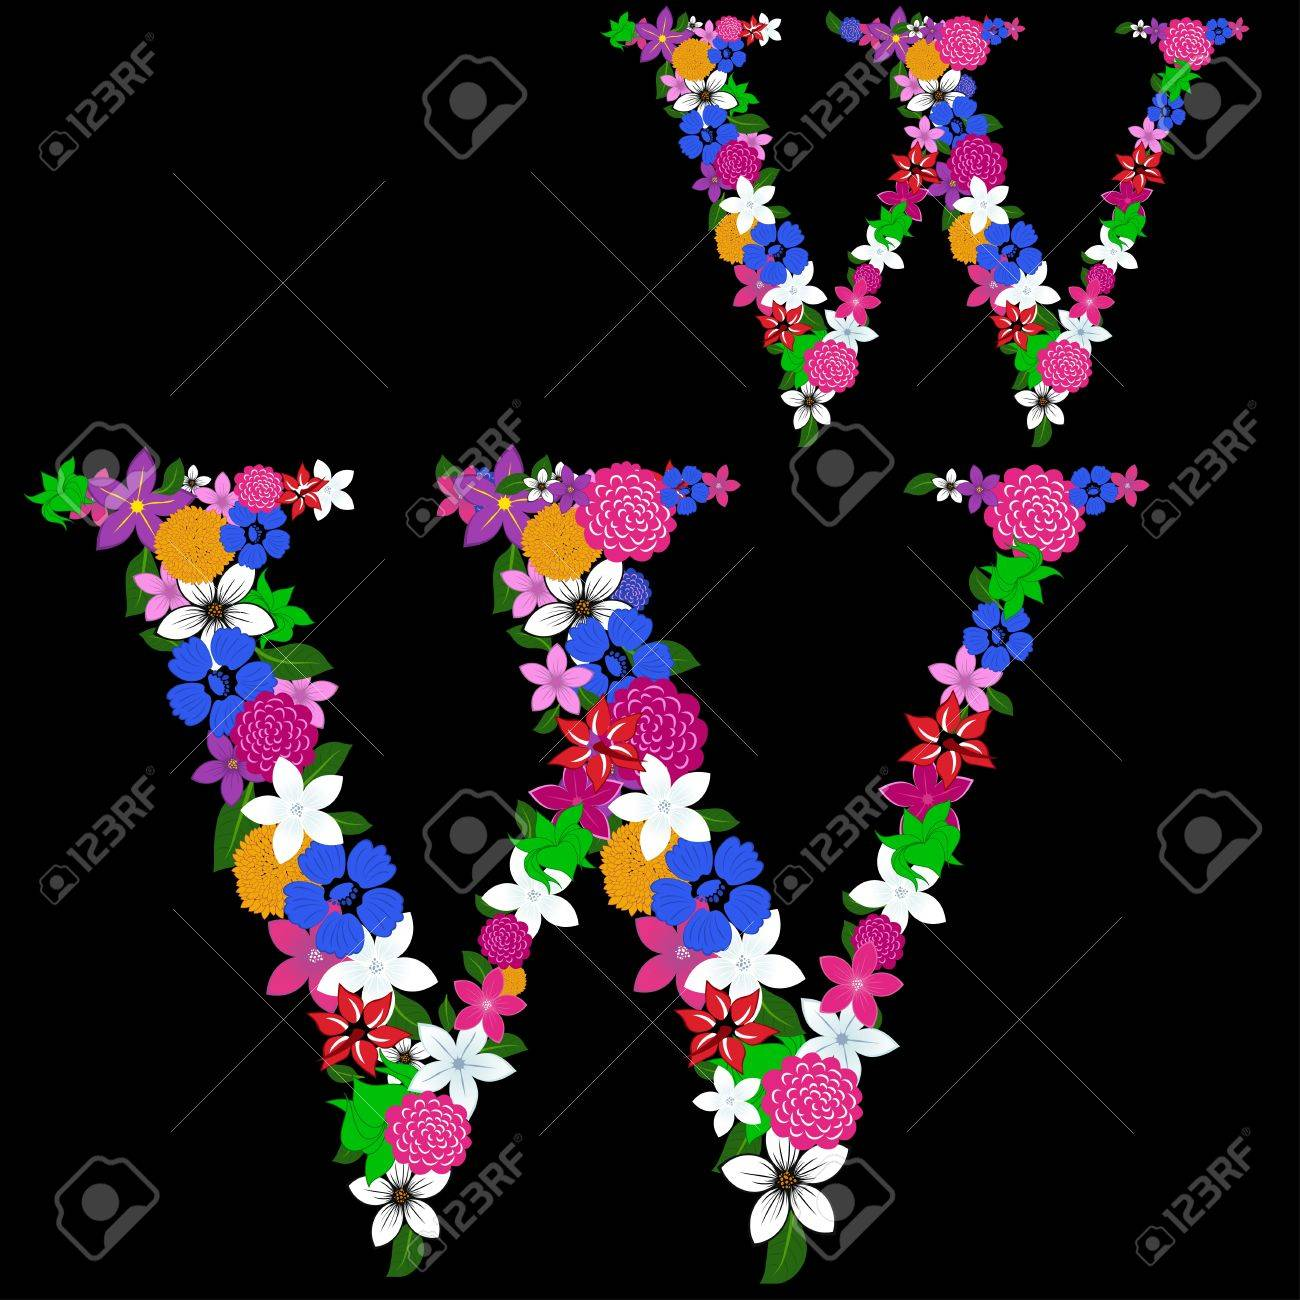 Floral alphabet letter for using in web and print design. Vector illustration. Stock Vector - 13719036